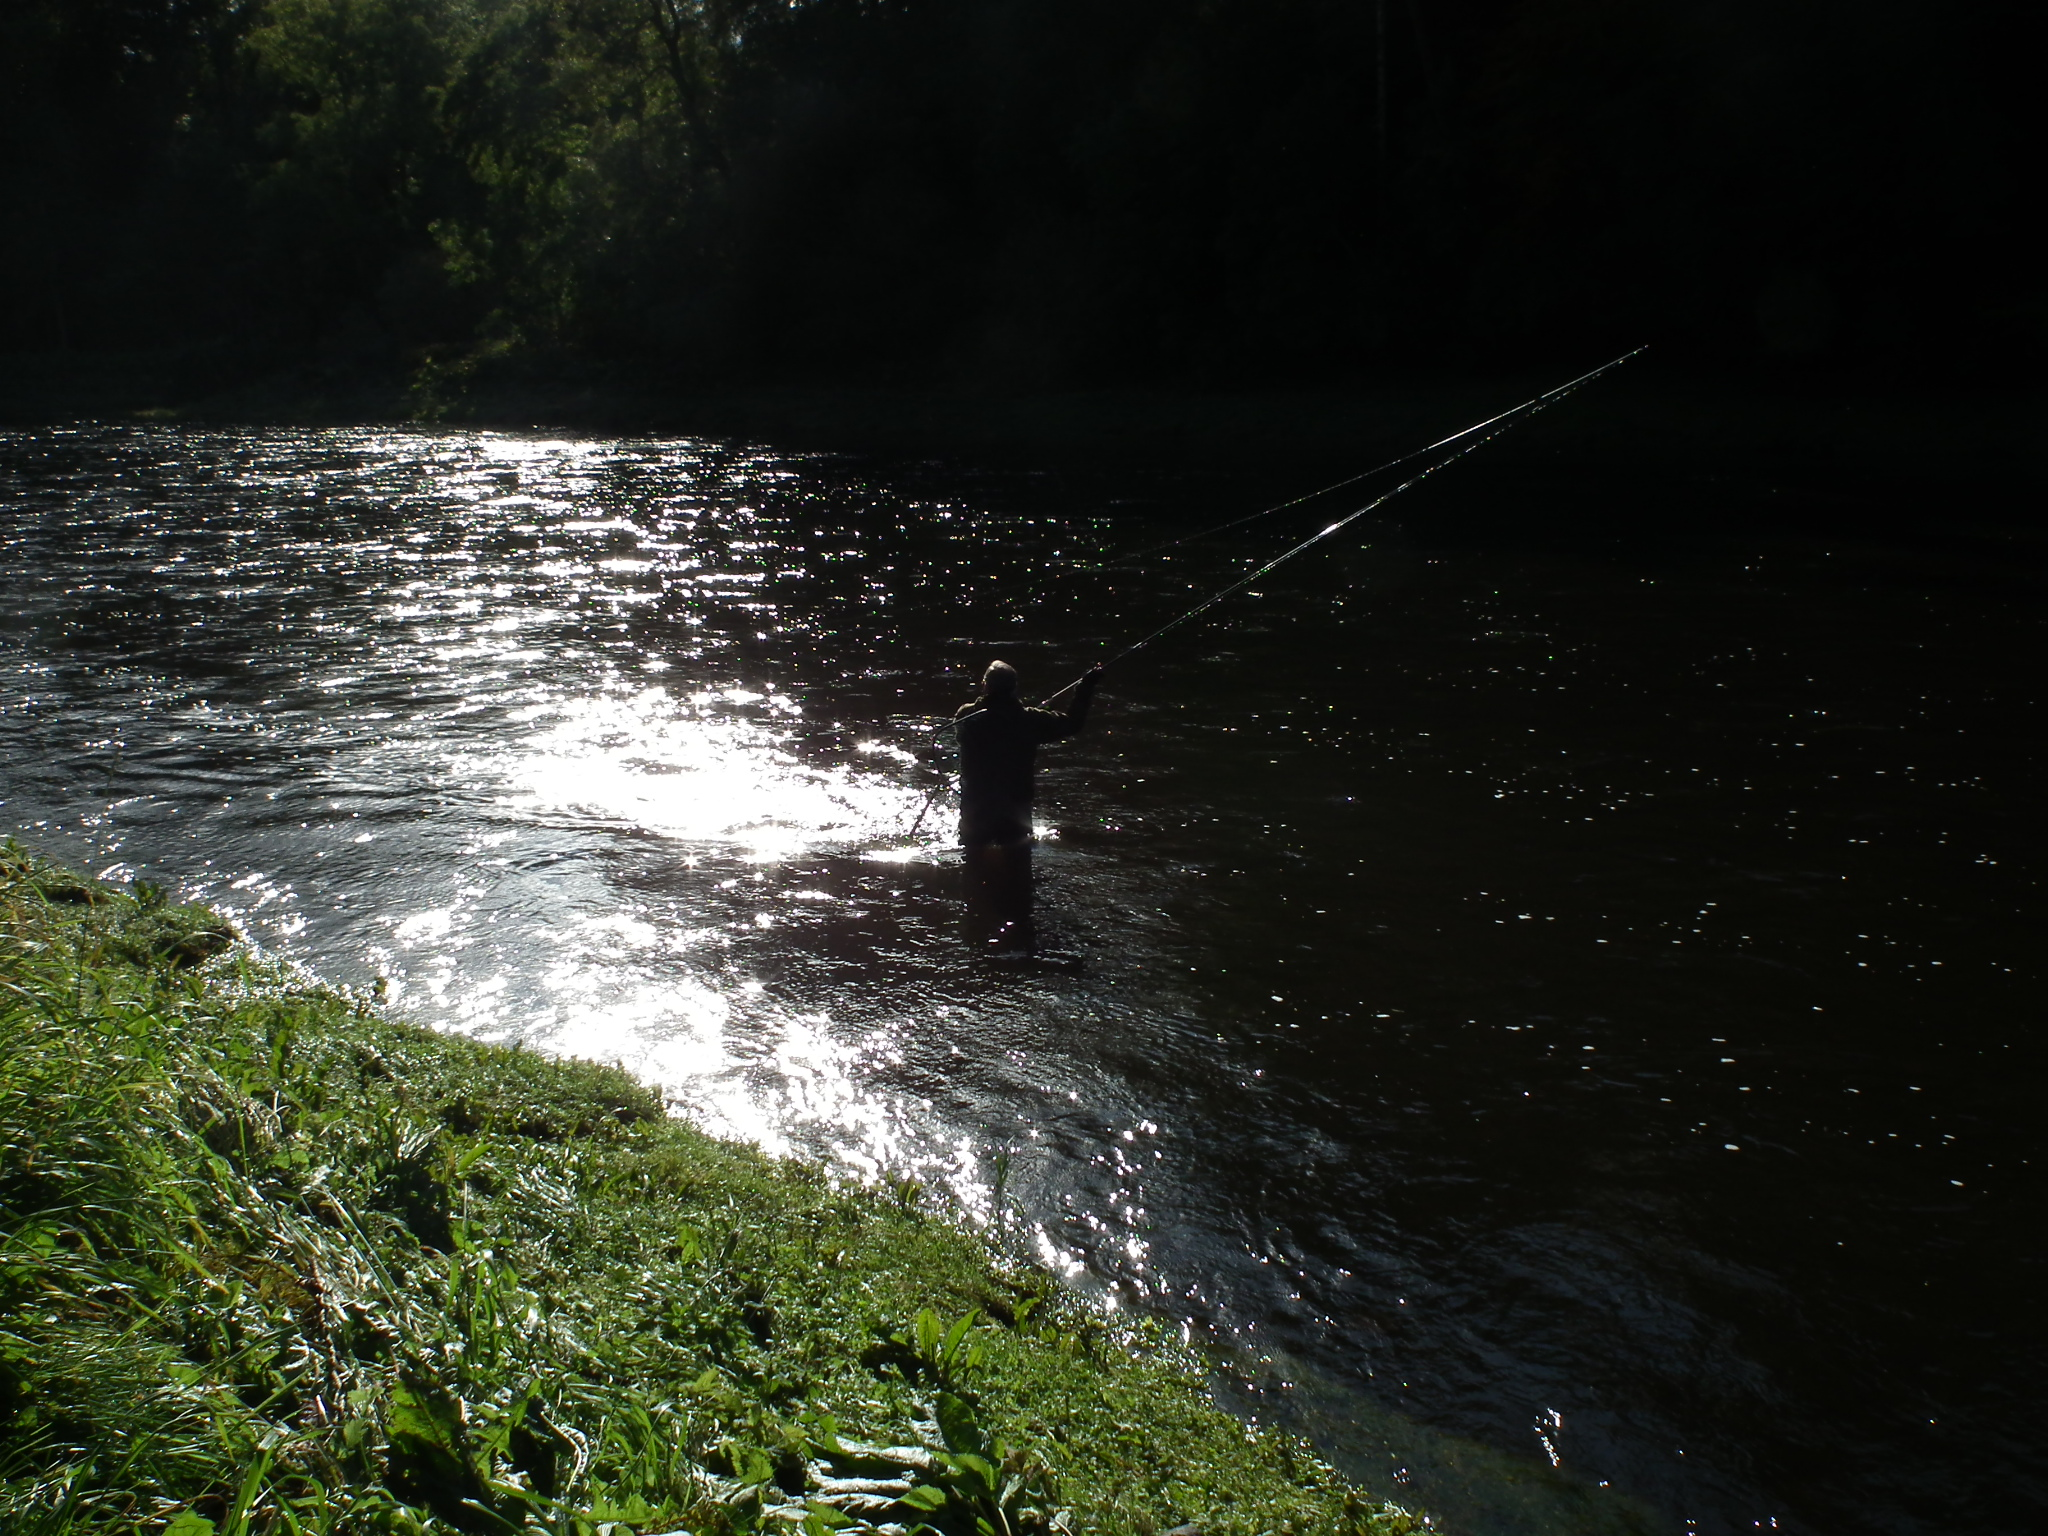 Angling on the Tweed River